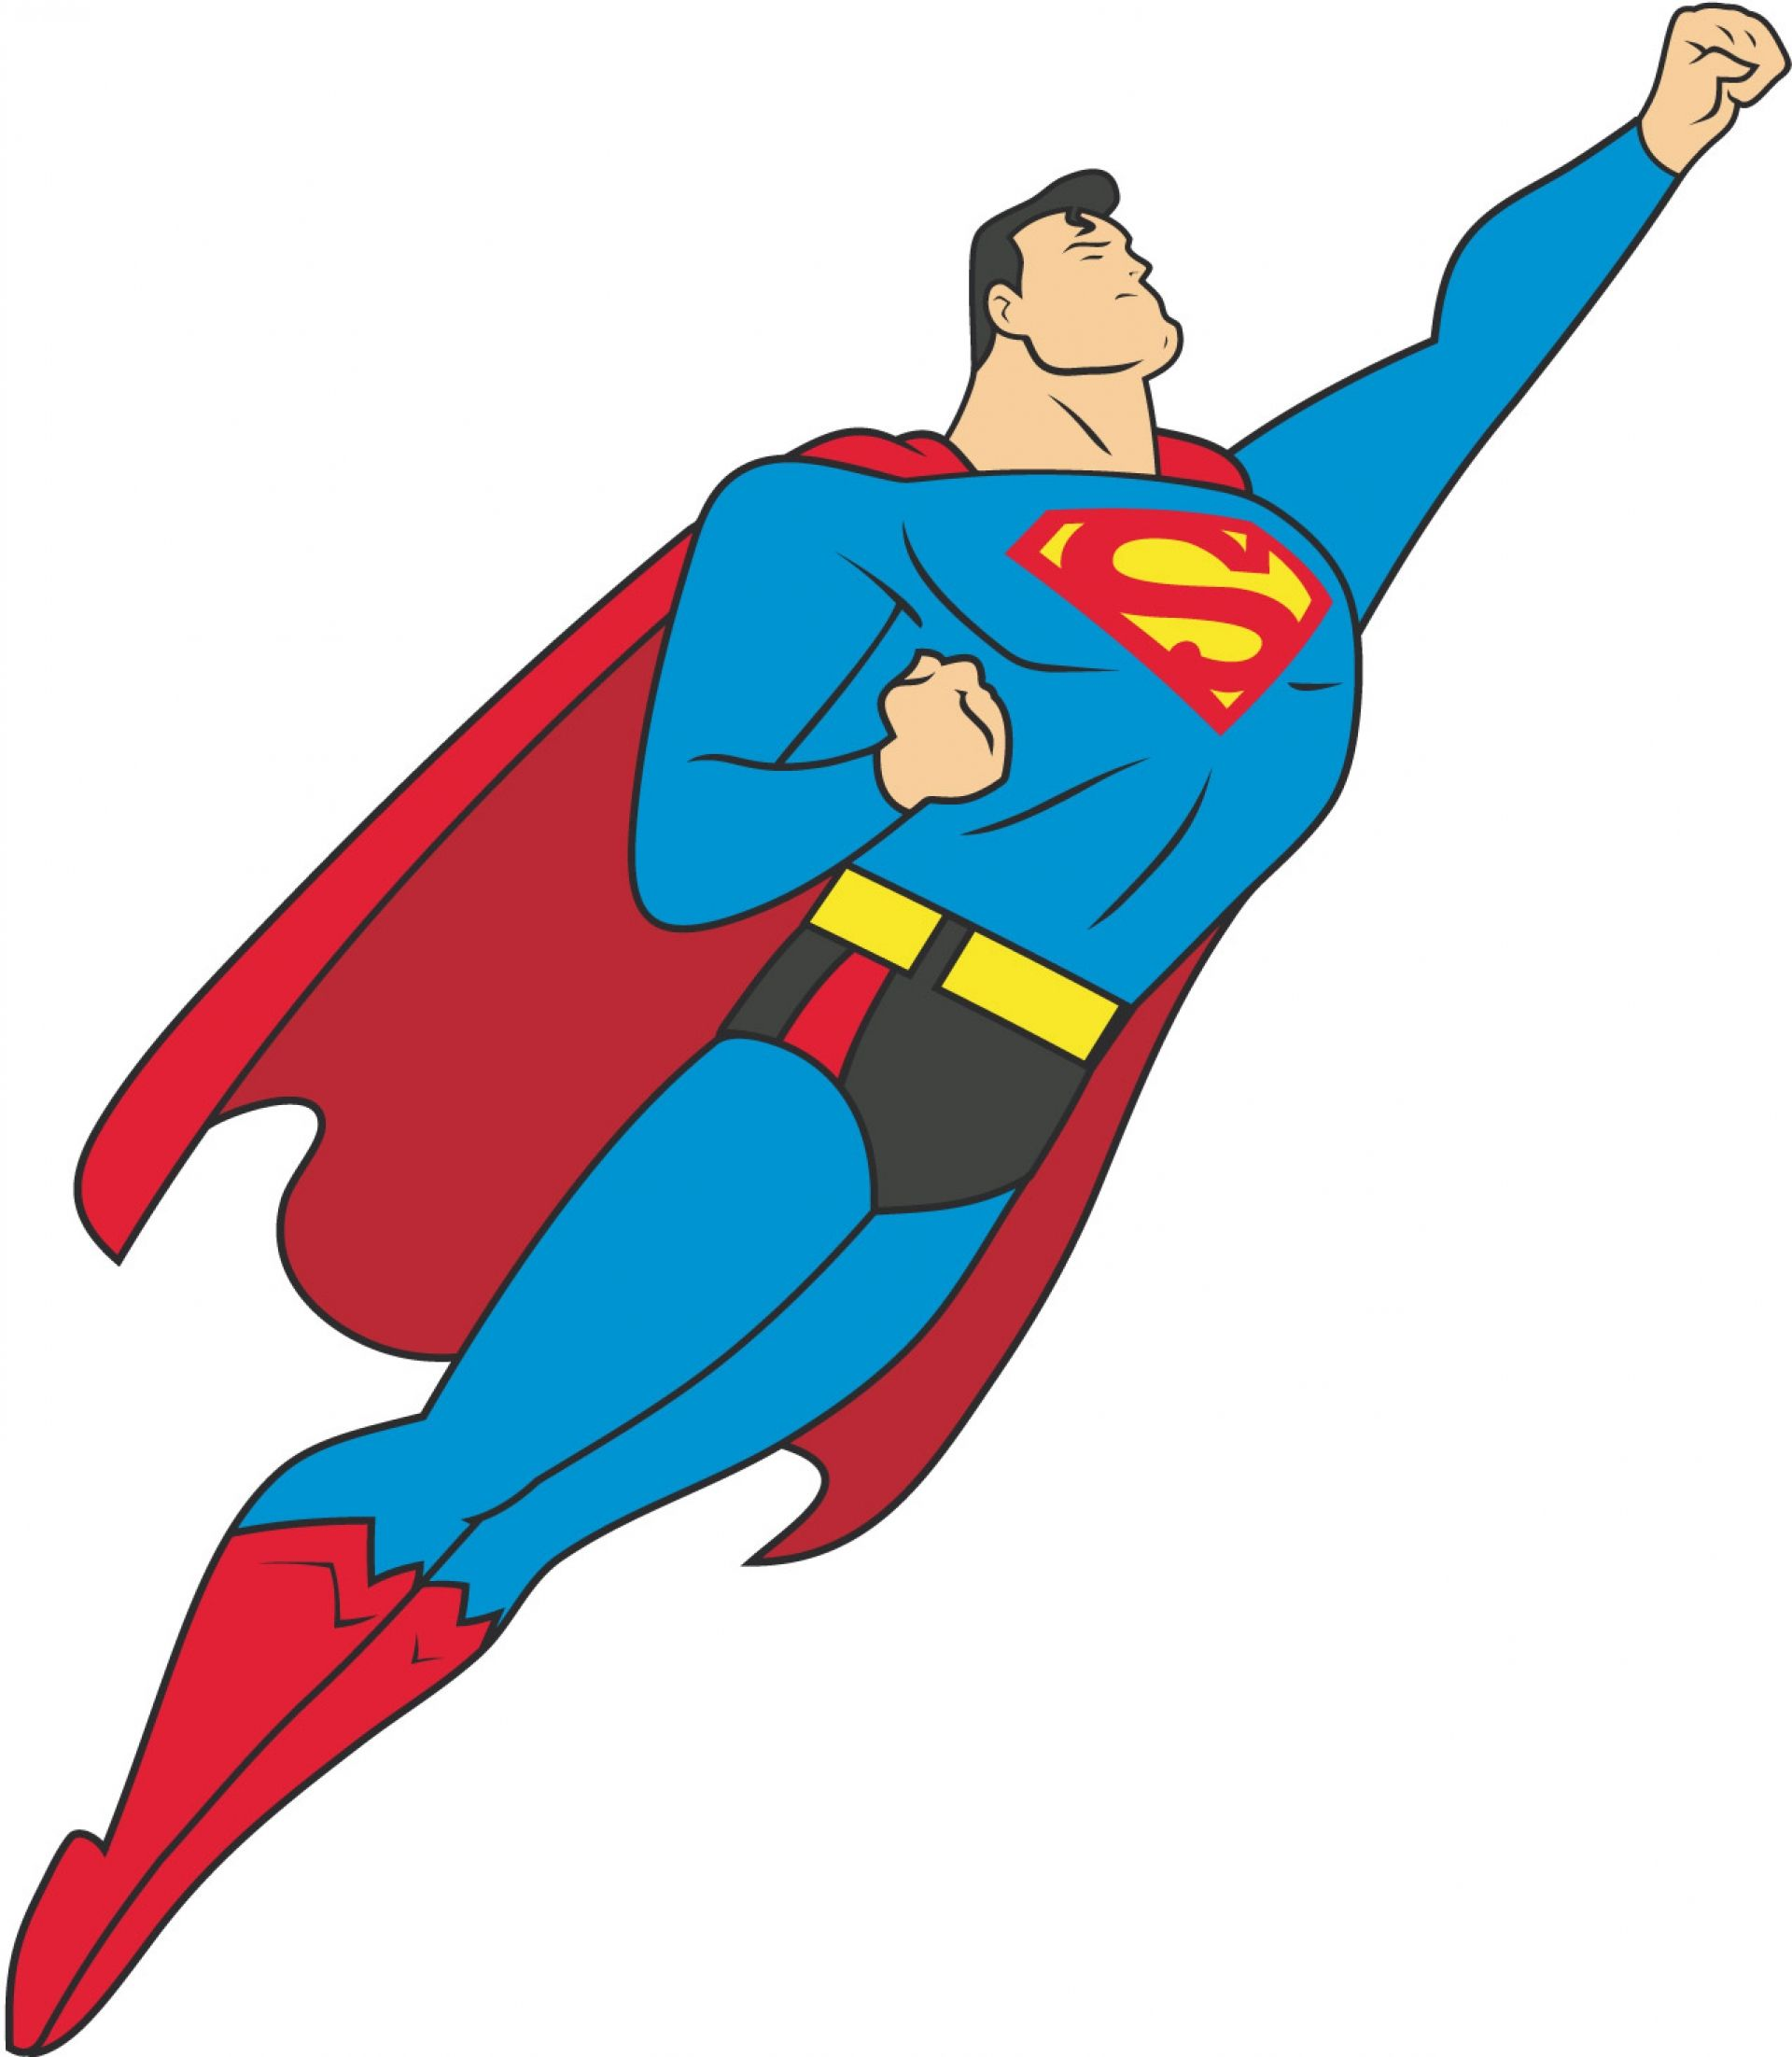 superman flying - Google Search | Illustration | Pinterest ...